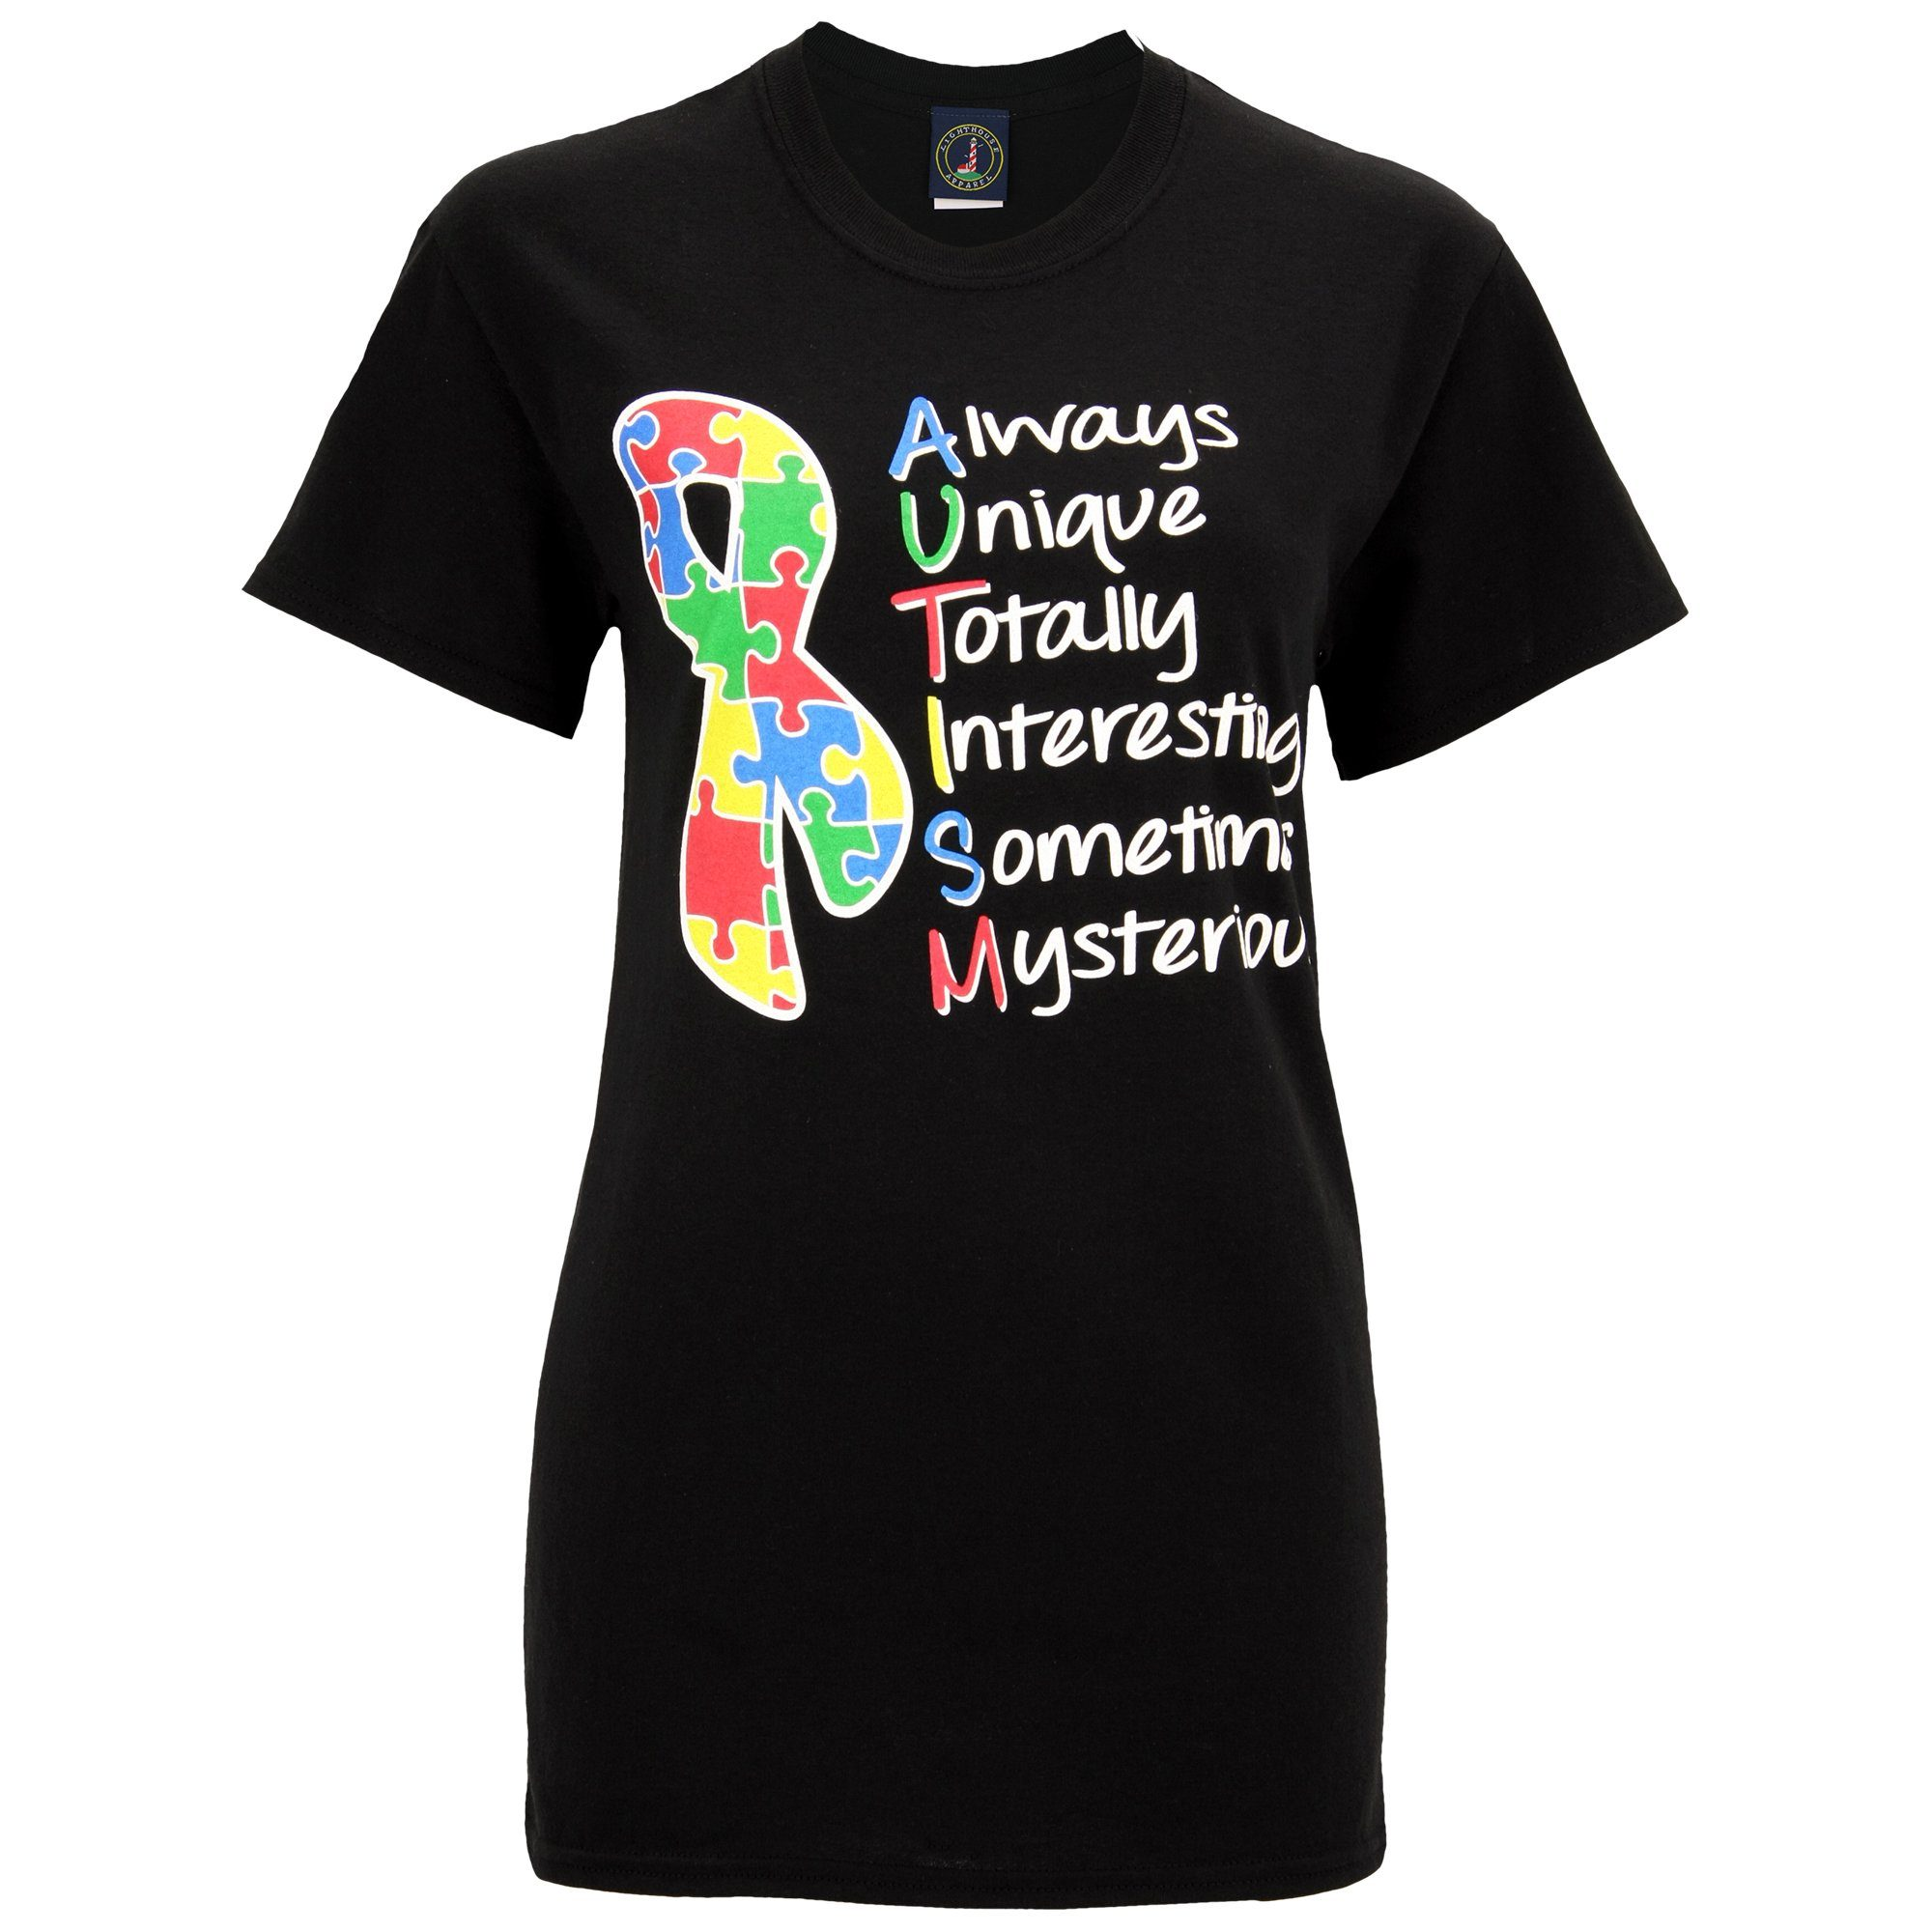 a4c154da024 The Heart of Autism T-Shirt| The Autism Site